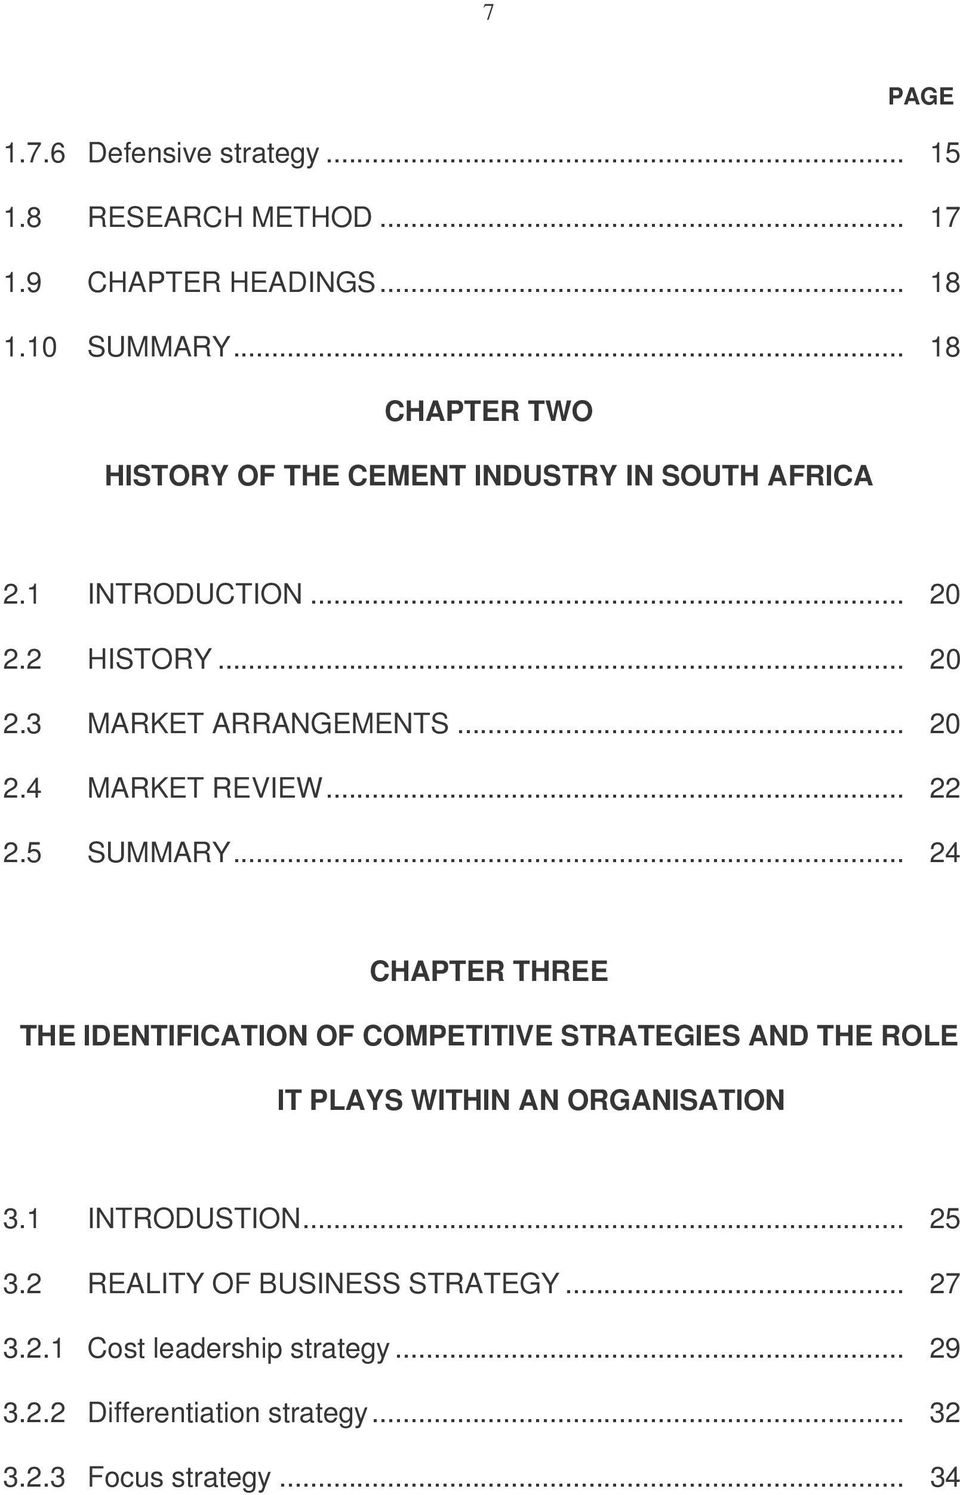 .. 22 2.5 SUMMARY... 24 CHAPTER THREE THE IDENTIFICATION OF COMPETITIVE STRATEGIES AND THE ROLE IT PLAYS WITHIN AN ORGANISATION 3.